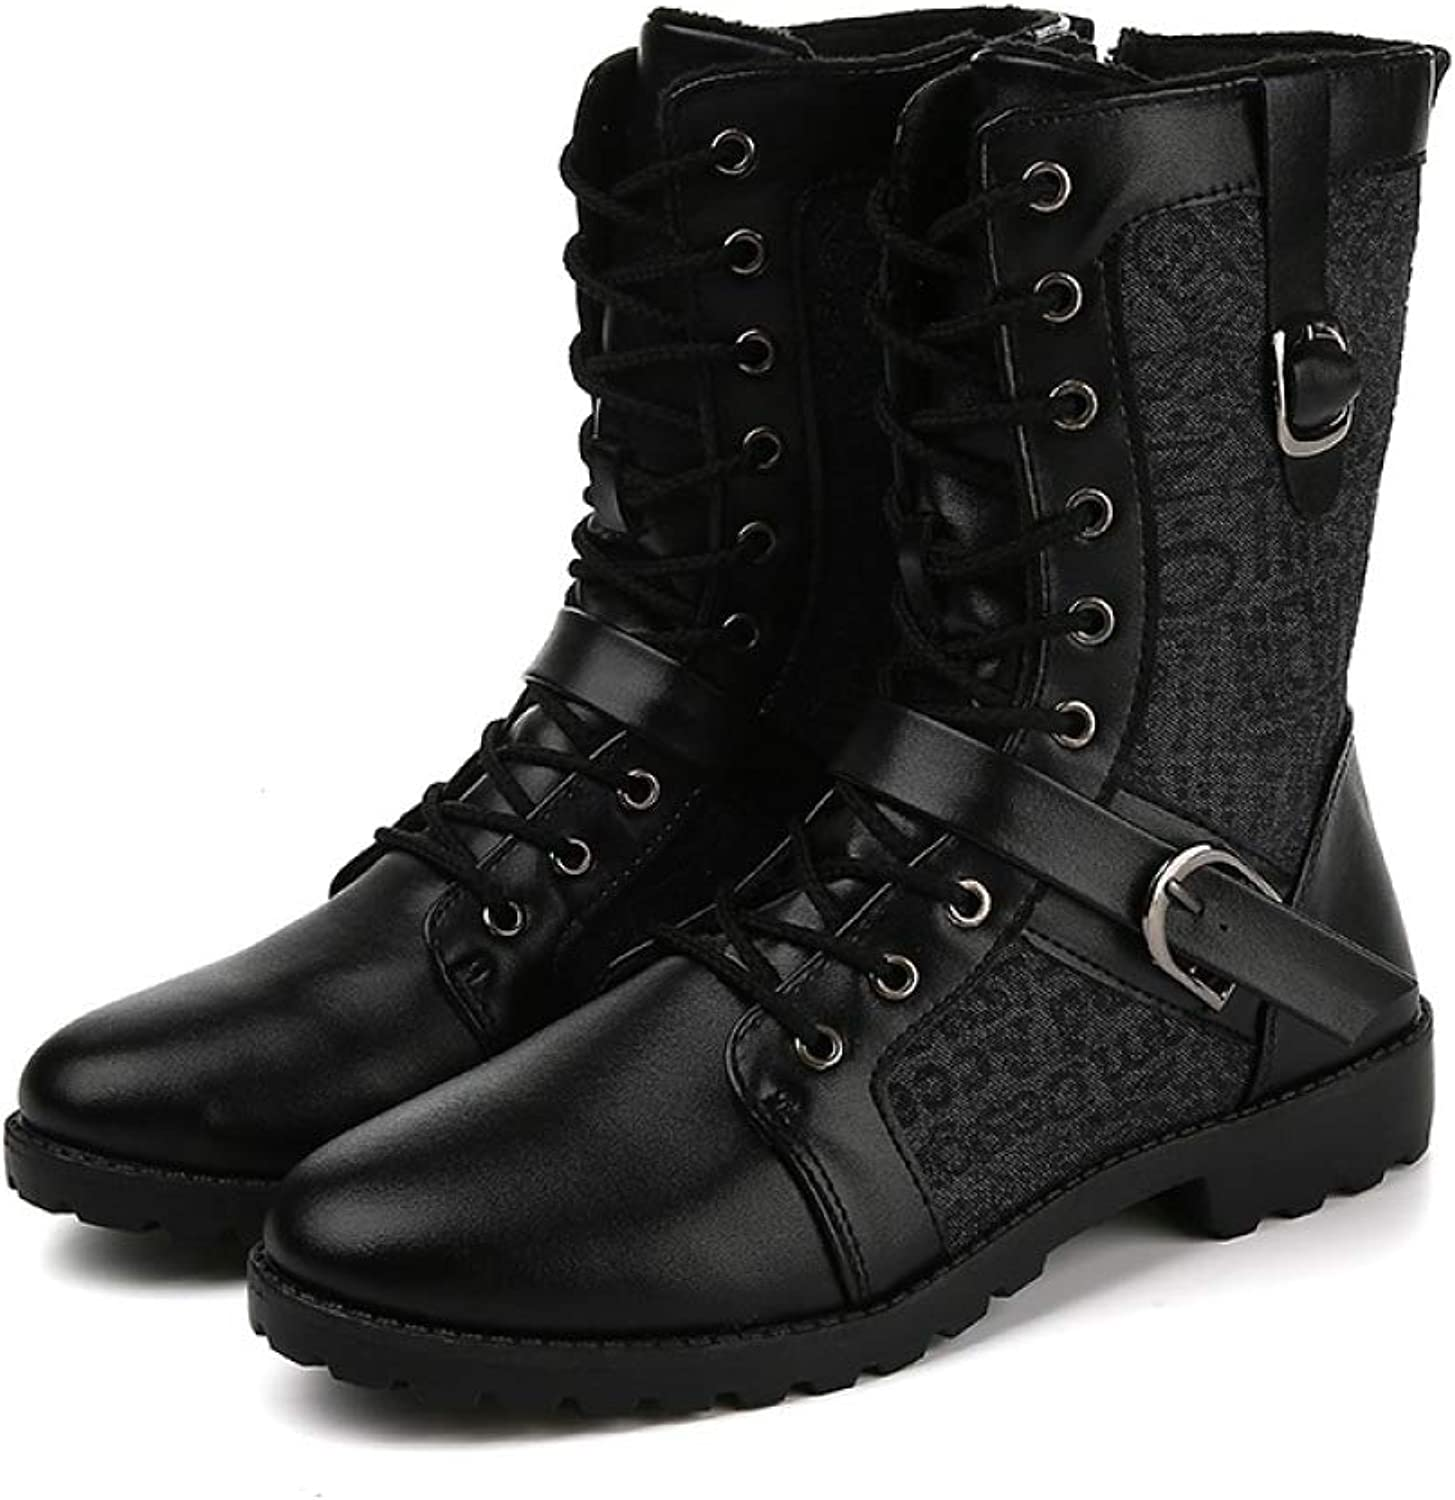 QIKAI Military Boots for Men Men's Boots Youth High Boots Warm Outdoor Military Boots